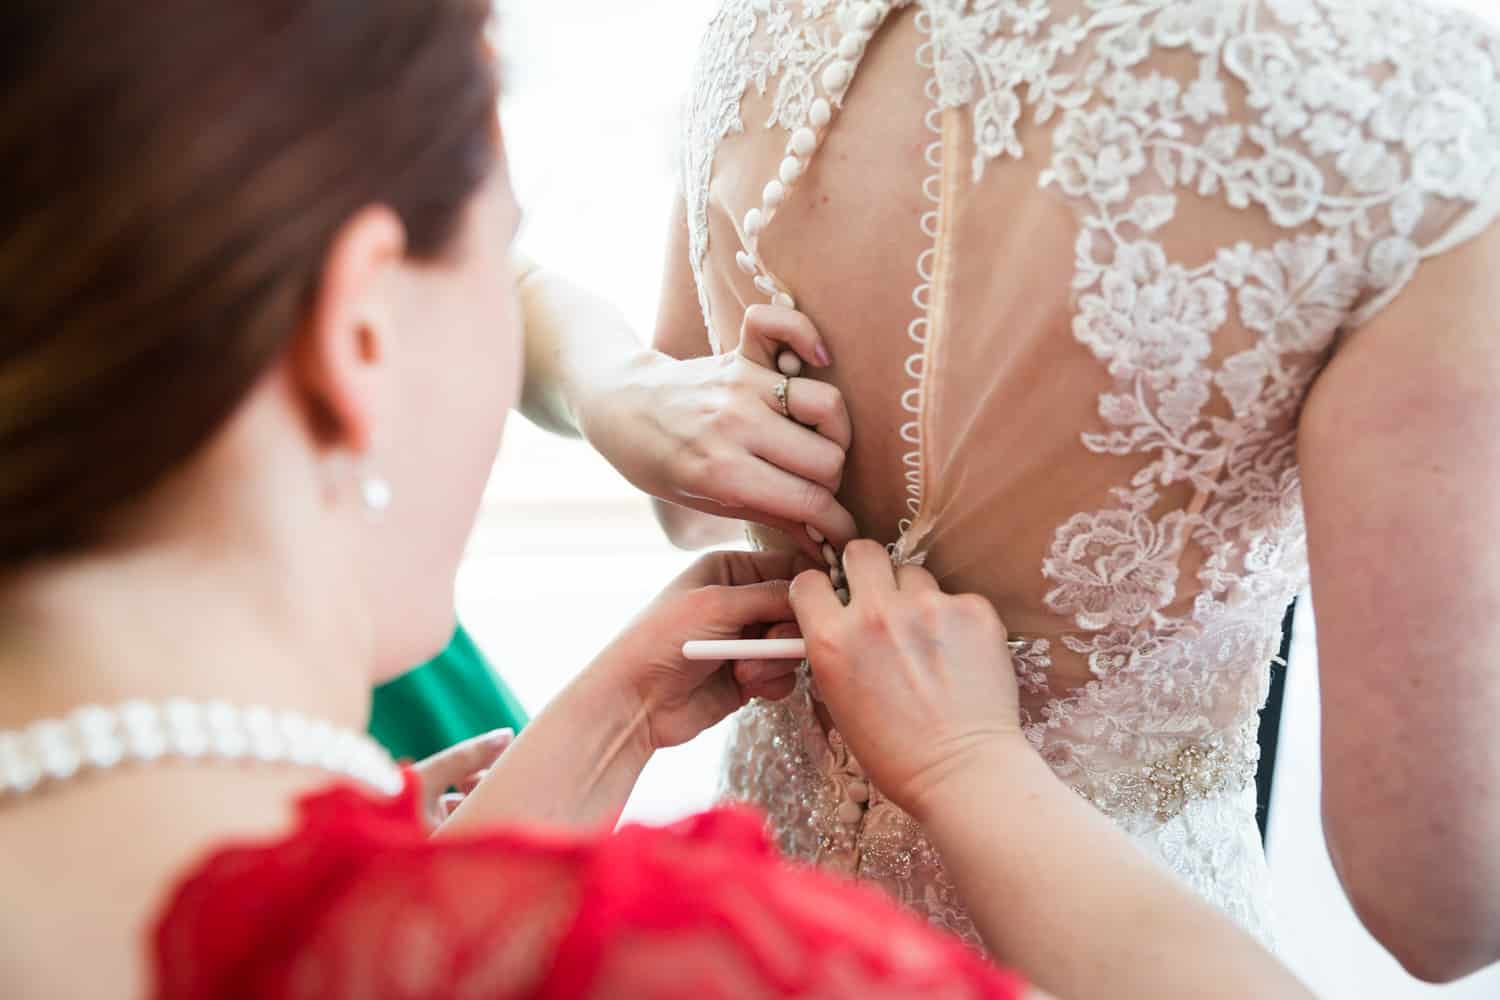 Close up on hands buttoning up bride into wedding dress